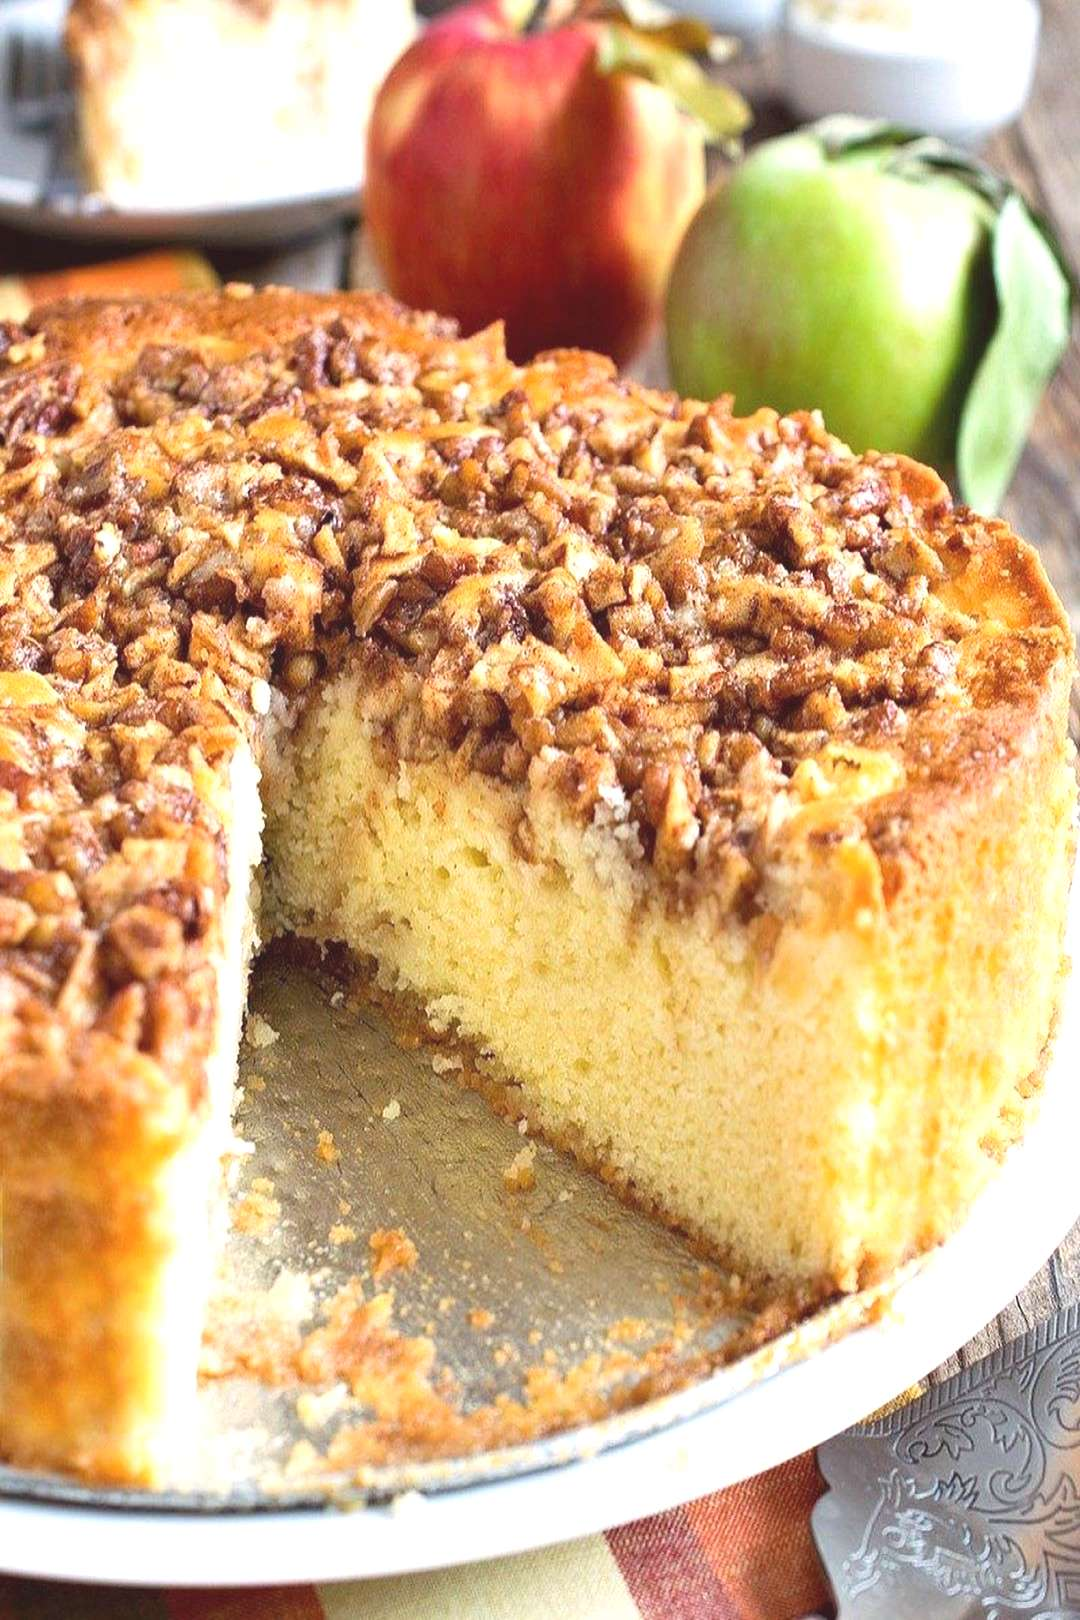 This Cream Cheese Apple Cake is moist and delicious with a sweet